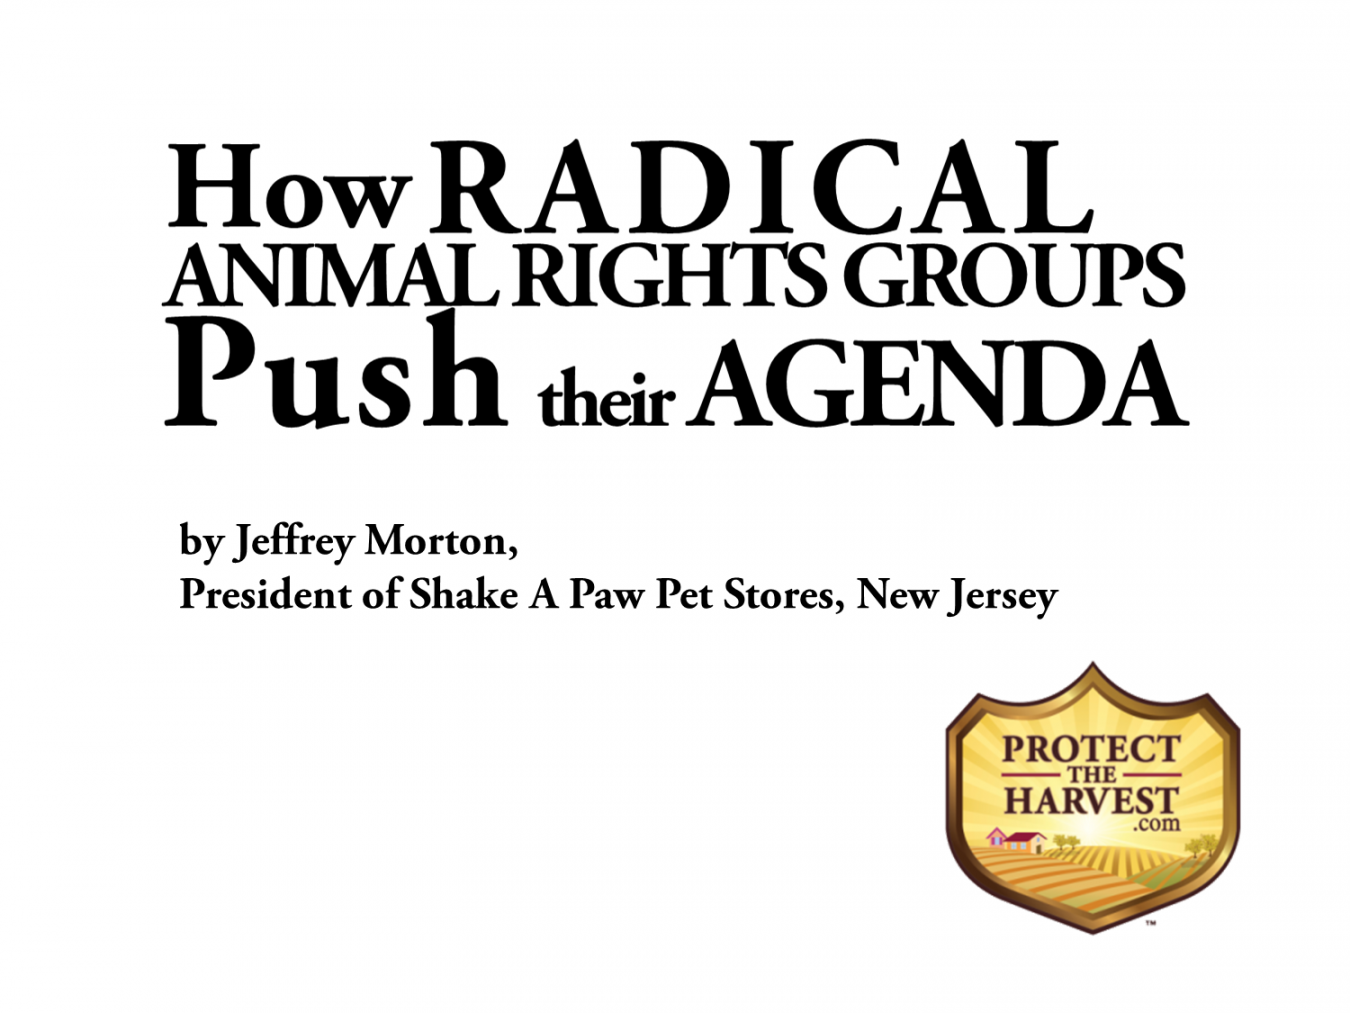 Guest Blog - How Radical Animal Rights Groups Push Their Agenda